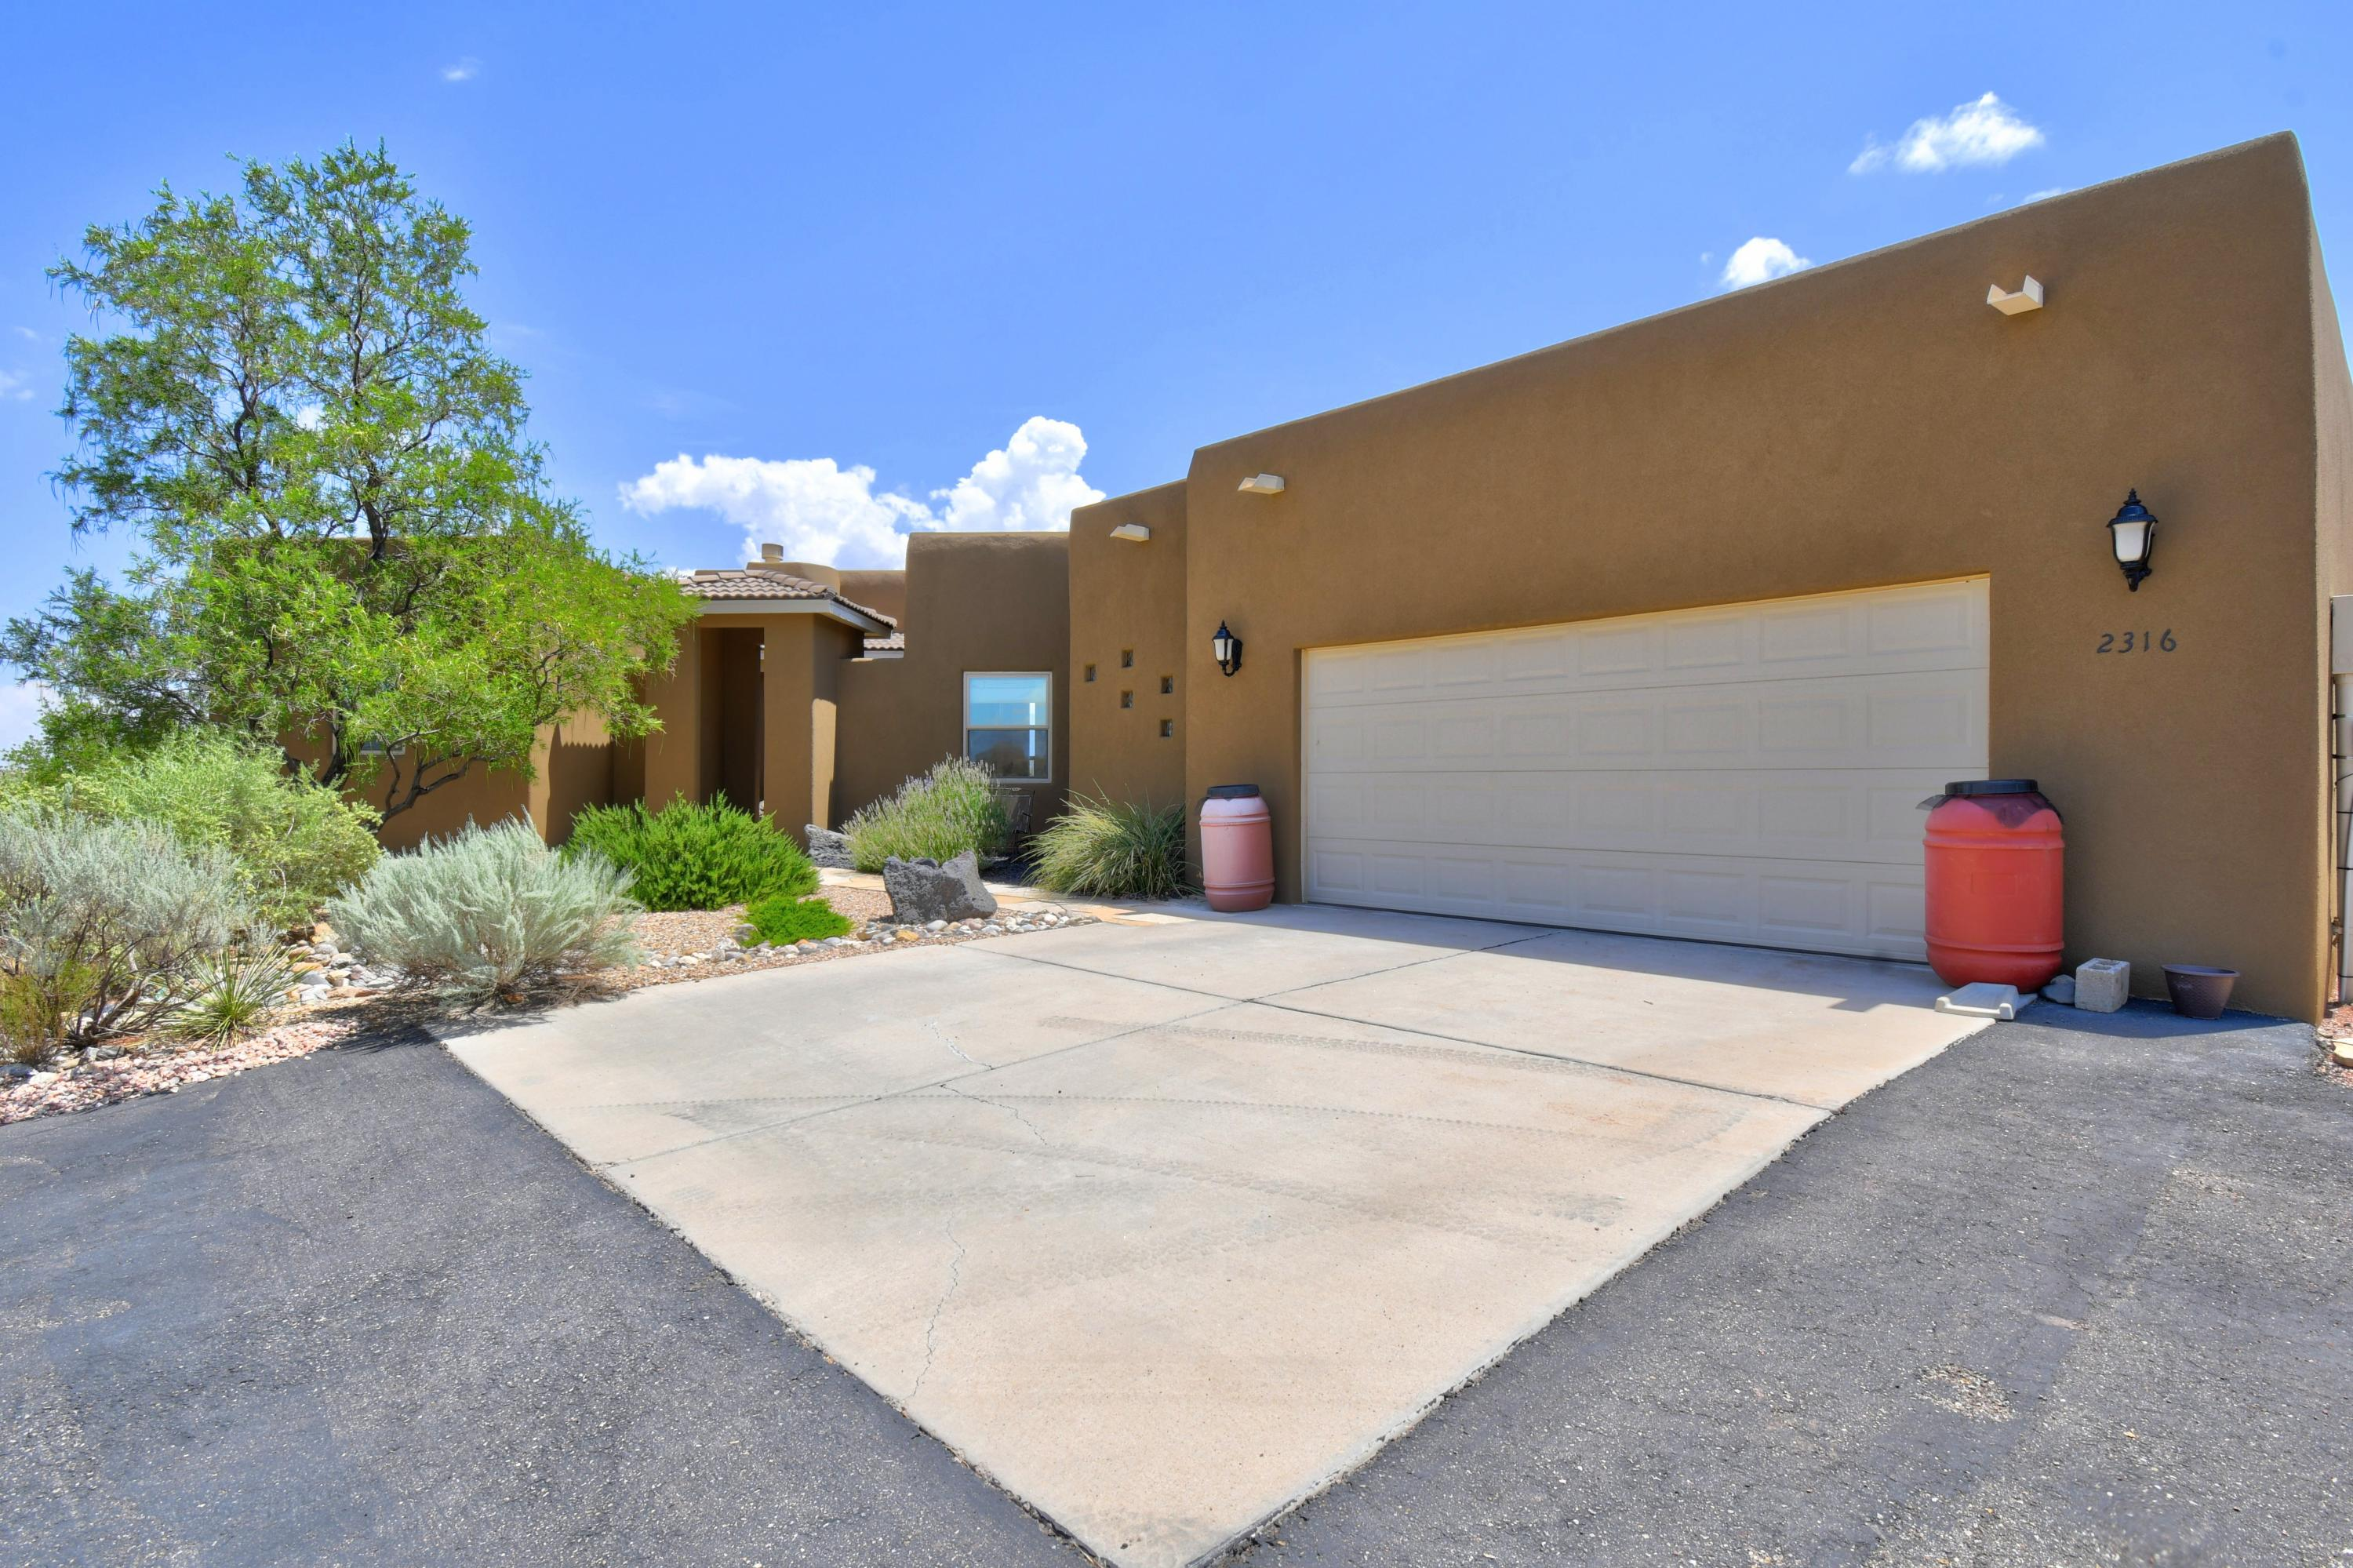 This Pristine Custom Ron Montoya Designed Home Features Breathtaking Sunrise & Sunset Views That Wow You! Enter Through the Vesibule To The Front Door. Enjoy The Great Room W/A Cozy Gas FP W/Stone Hearth, Large Tile Floors & Curved Window Wall. Spacious Kitchen W/Corner Walk-in Pantry, Window Over Sink, Granite Counters, Stone Tile Backsplash, 2 Yr Old Stainless DW, Large Bar Top For Every Day Use. Open To The Dining Area & Great Room. Pella Wood SGD to Covr'd Patio. Enter The Luxurious Master EnSuite Through French Doors, An Arched Opening Takes You To The Sleeping Quarters W/Wide Plank Wood Floors, Window Wall & Door to Covr'd Patio. Corner Jetted Garden Tub Separates Two Sinks & Vanity. Snail Tile Shower W/New Dual Shower Heads, Water Closet, Wood Pocket Door To The WIC & Linen Closet.